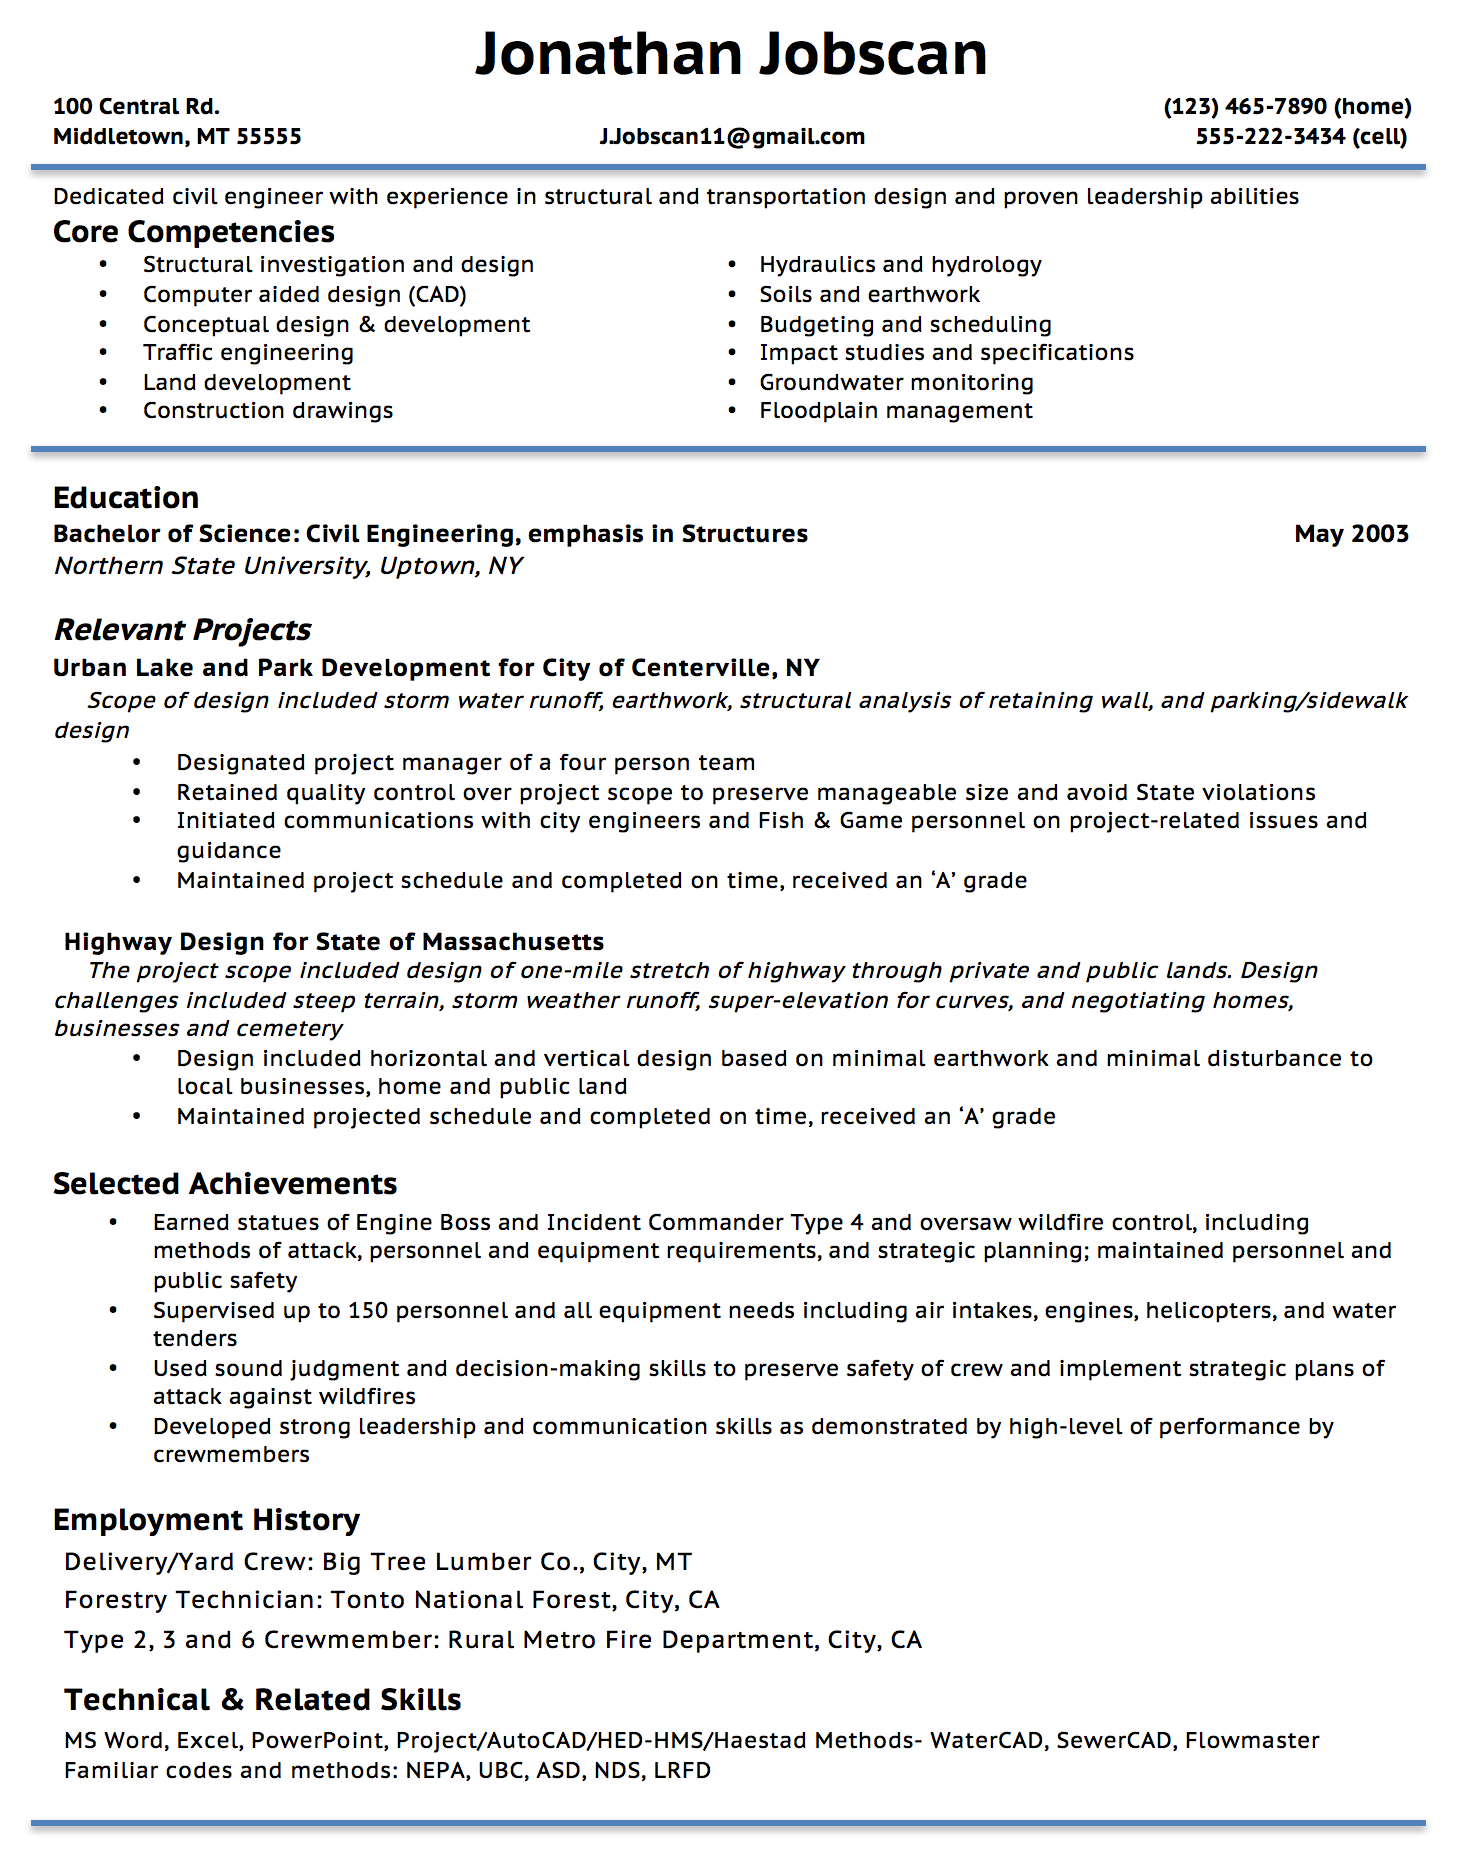 Opposenewapstandardsus  Pretty Resume Writing Guide  Jobscan With Extraordinary Example Of A Functional Resume Format With Easy On The Eye Tips For A Resume Also Entry Level Registered Nurse Resume In Addition Sample College Application Resume And Word Resume Template  As Well As Cna Responsibilities Resume Additionally Resume For Teenager With No Experience From Jobscanco With Opposenewapstandardsus  Extraordinary Resume Writing Guide  Jobscan With Easy On The Eye Example Of A Functional Resume Format And Pretty Tips For A Resume Also Entry Level Registered Nurse Resume In Addition Sample College Application Resume From Jobscanco